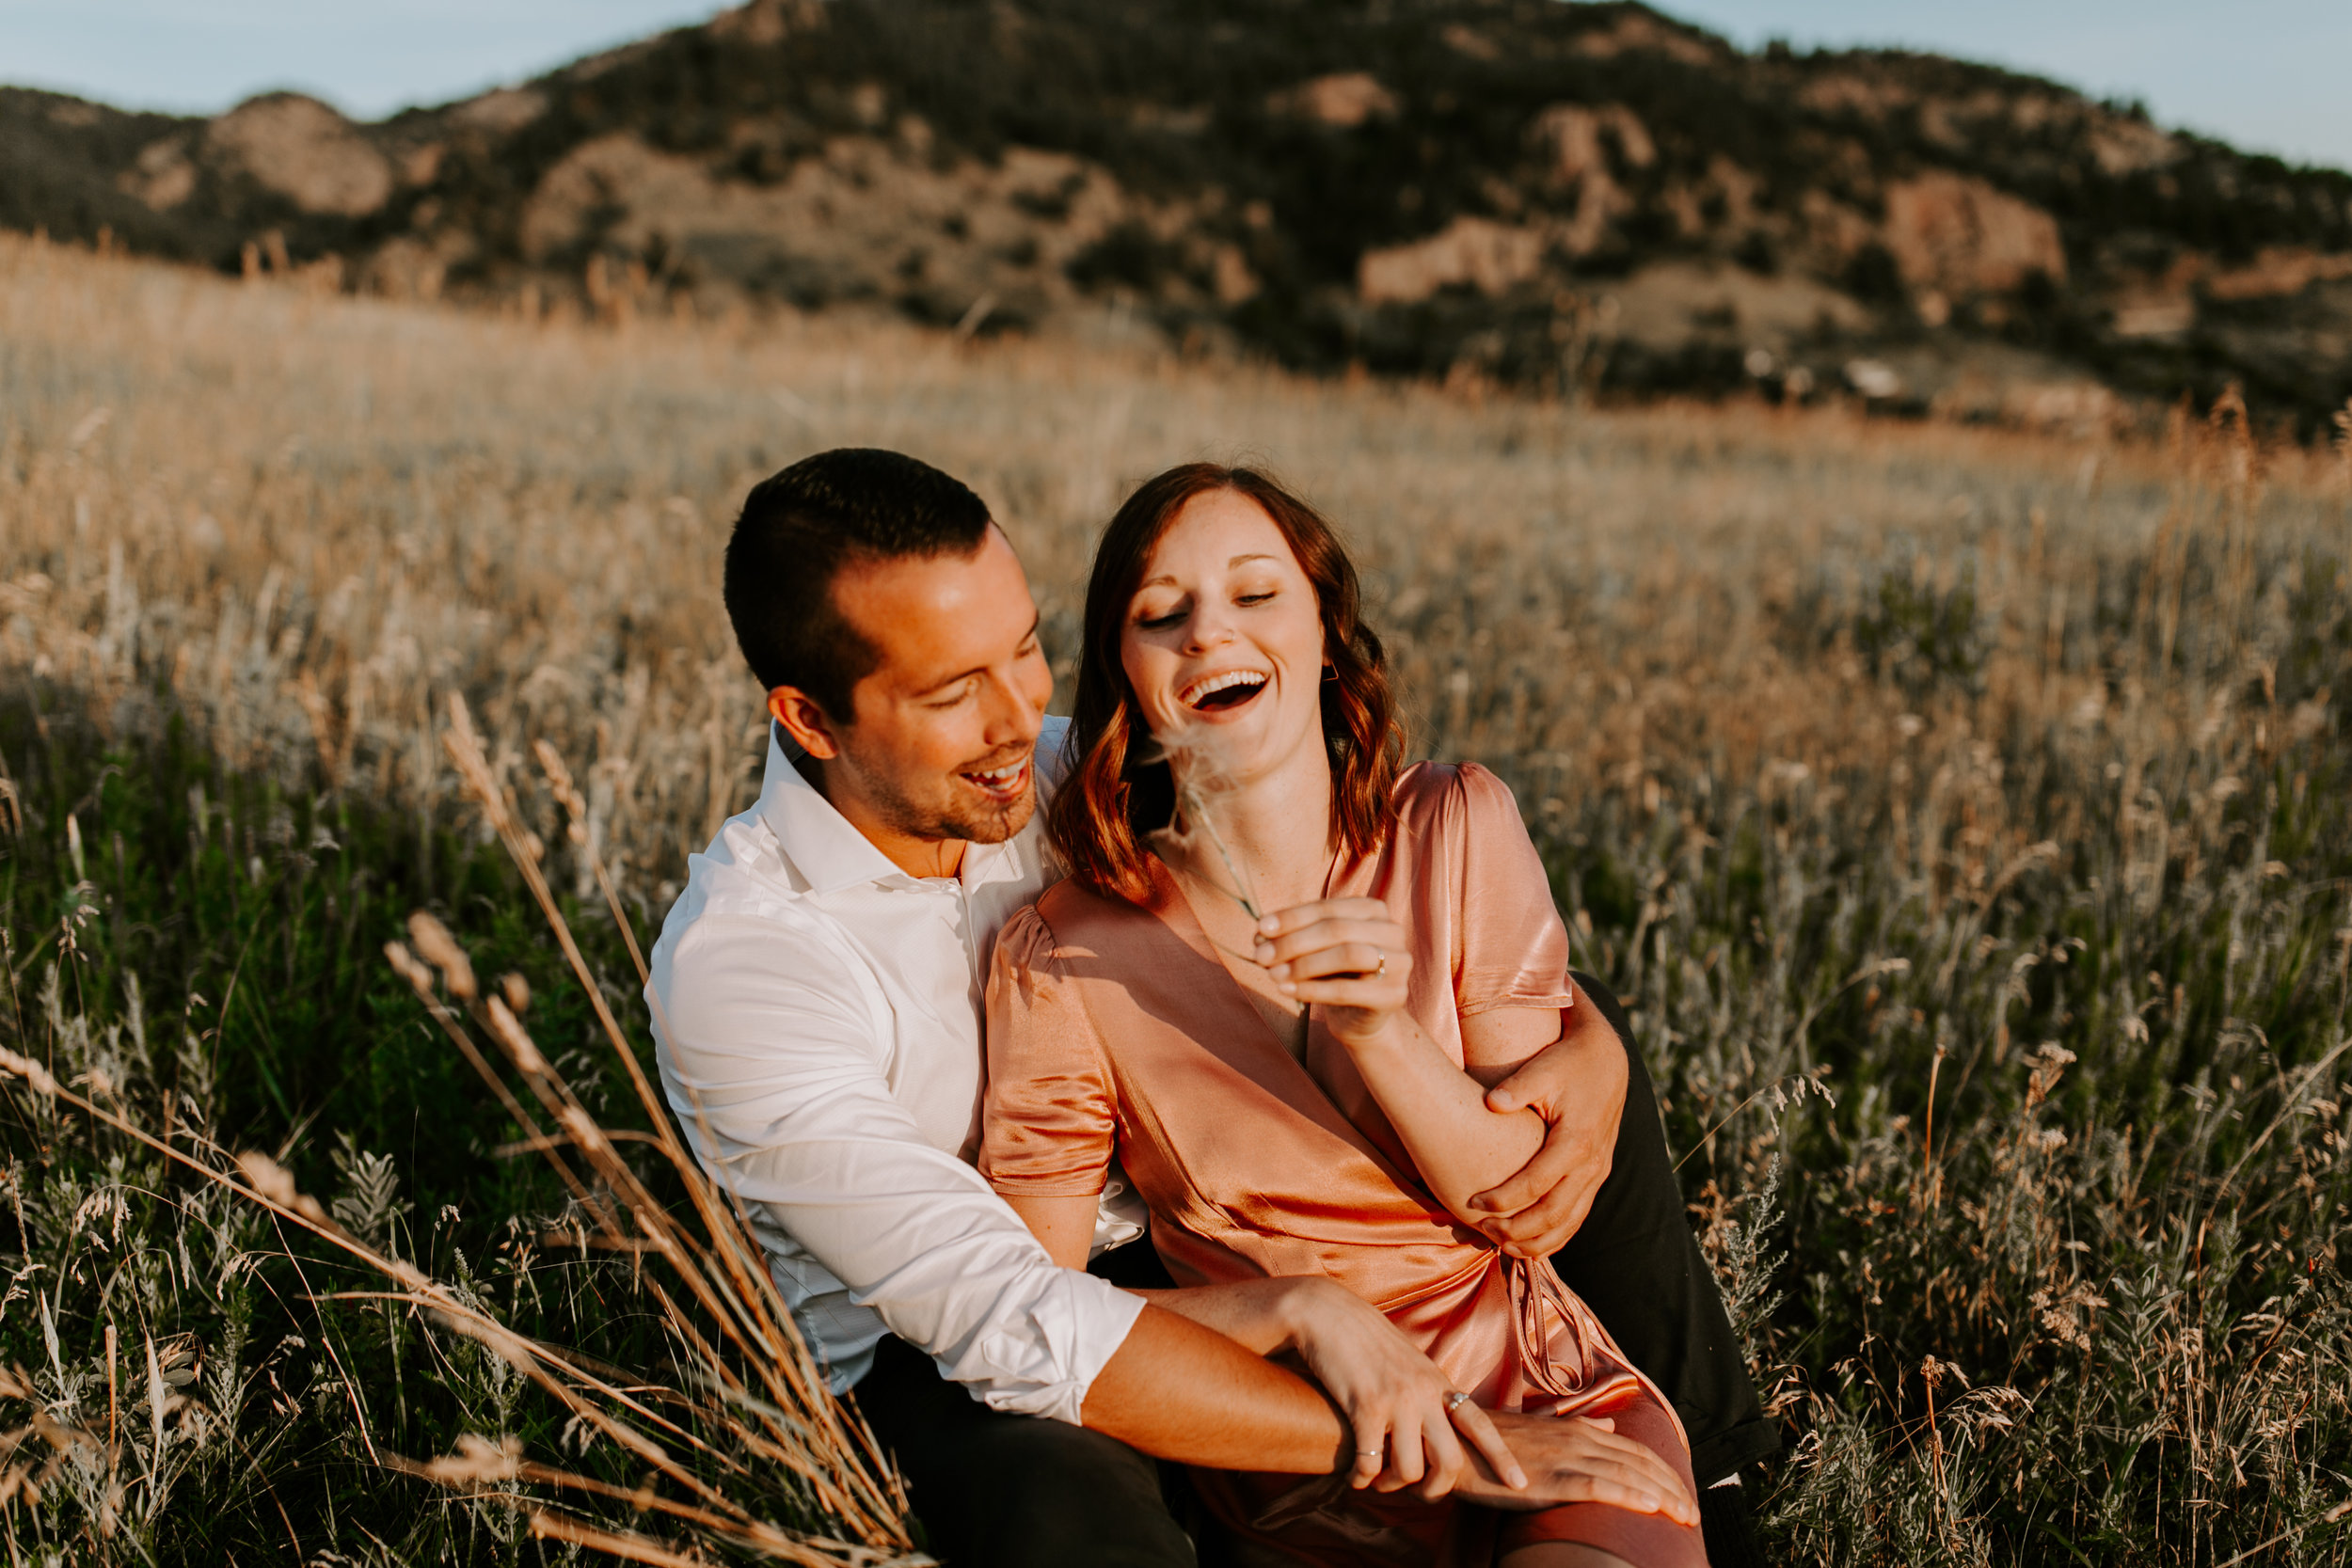 gracetphotography-denver-colorado-adventure-session-elopement-wedding-photographer-18.jpg